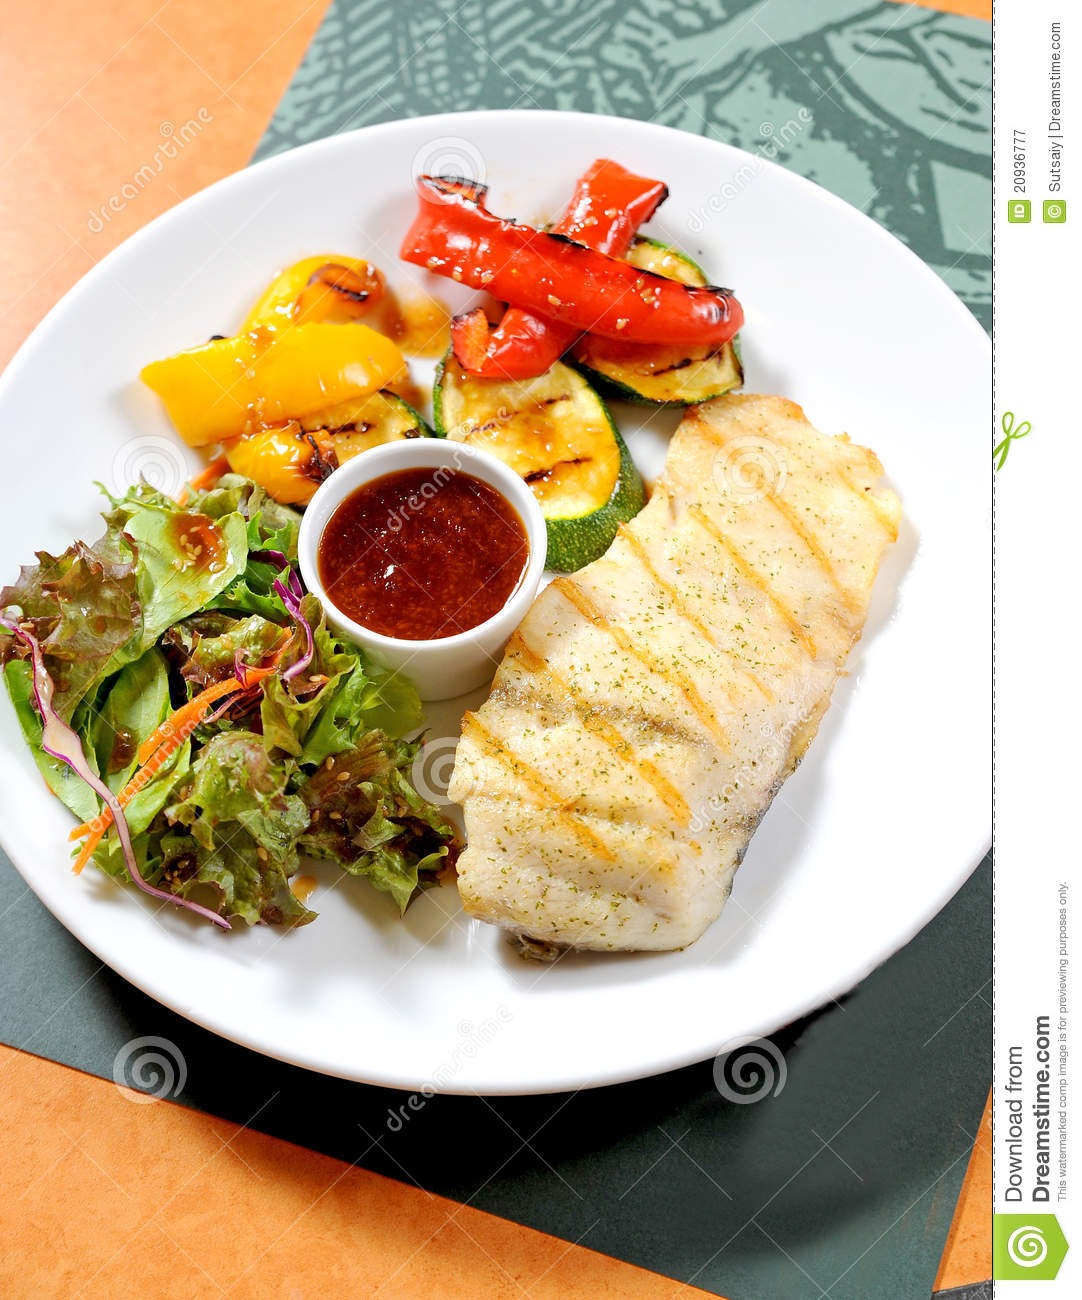 Fish steak with vegetables royalty free stock photography for Fish with vegetables